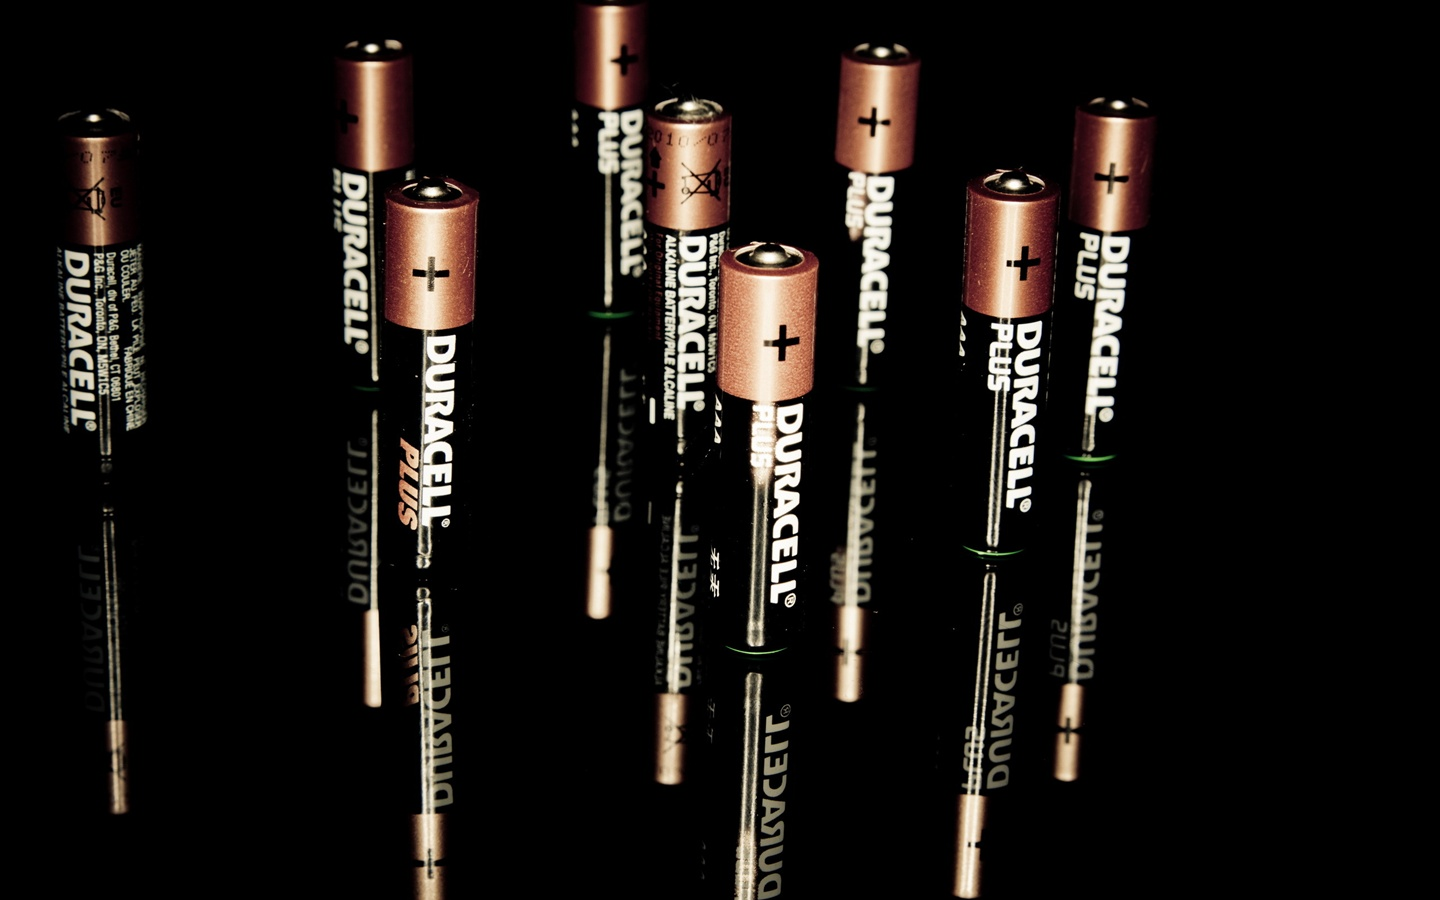 Wallpaper Duracell battery 2560x1600 HD Picture Image 1440x900